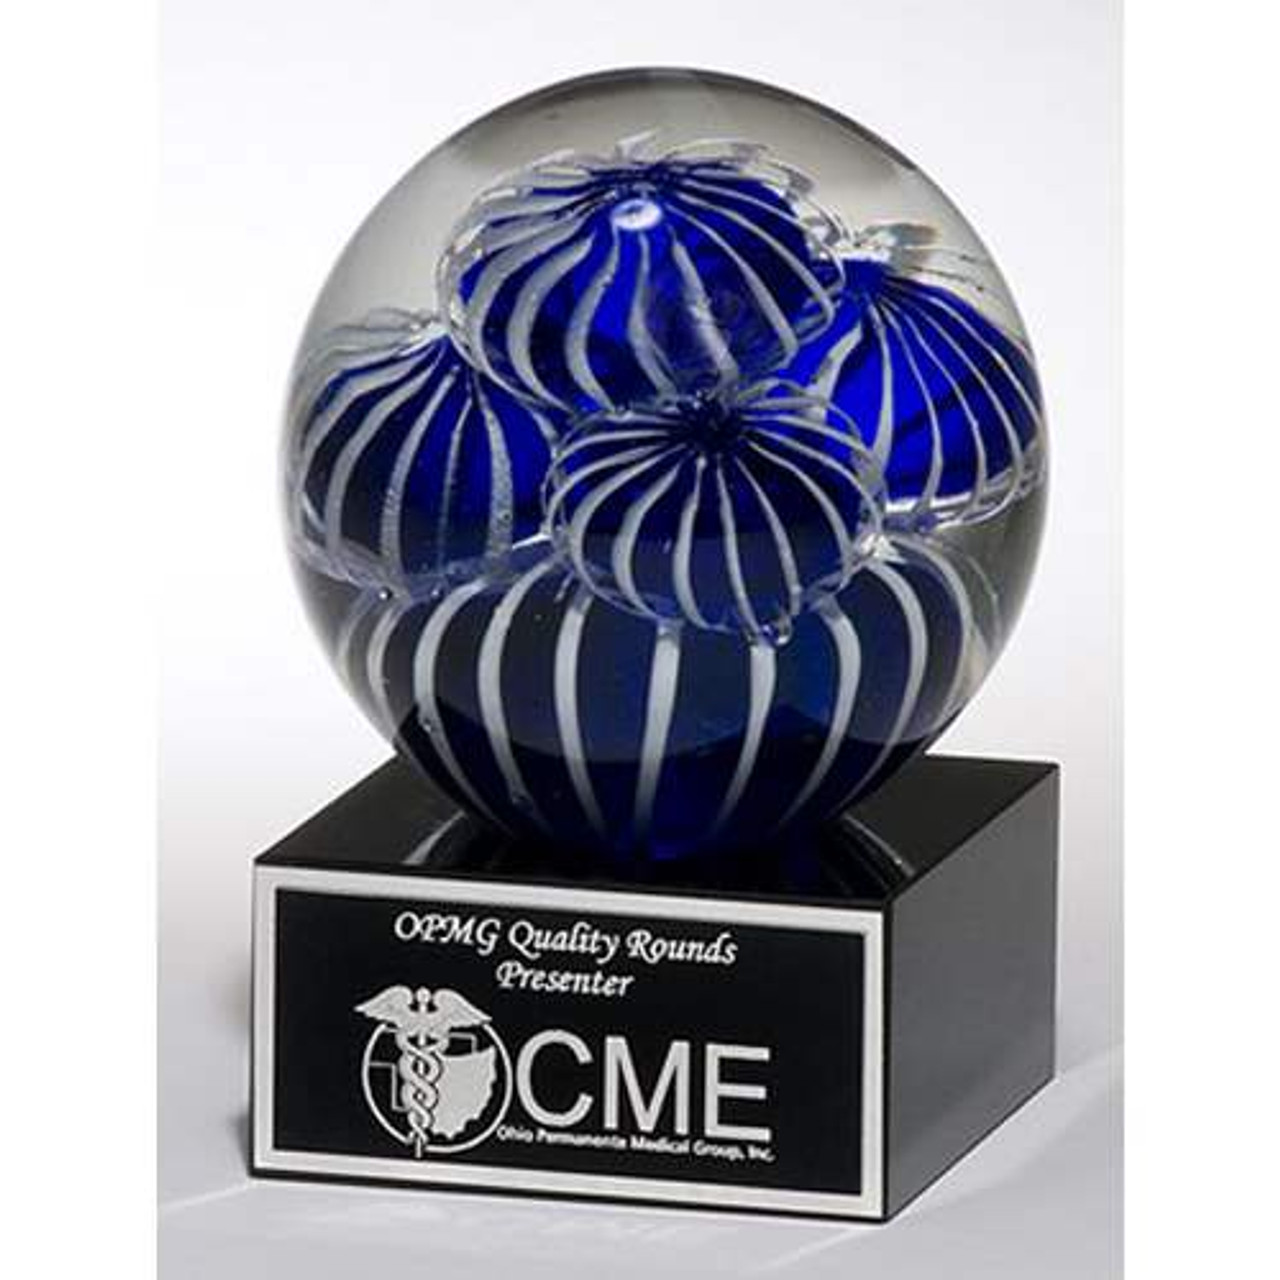 Art glass globe w/Blue-White Sea Anemone Design